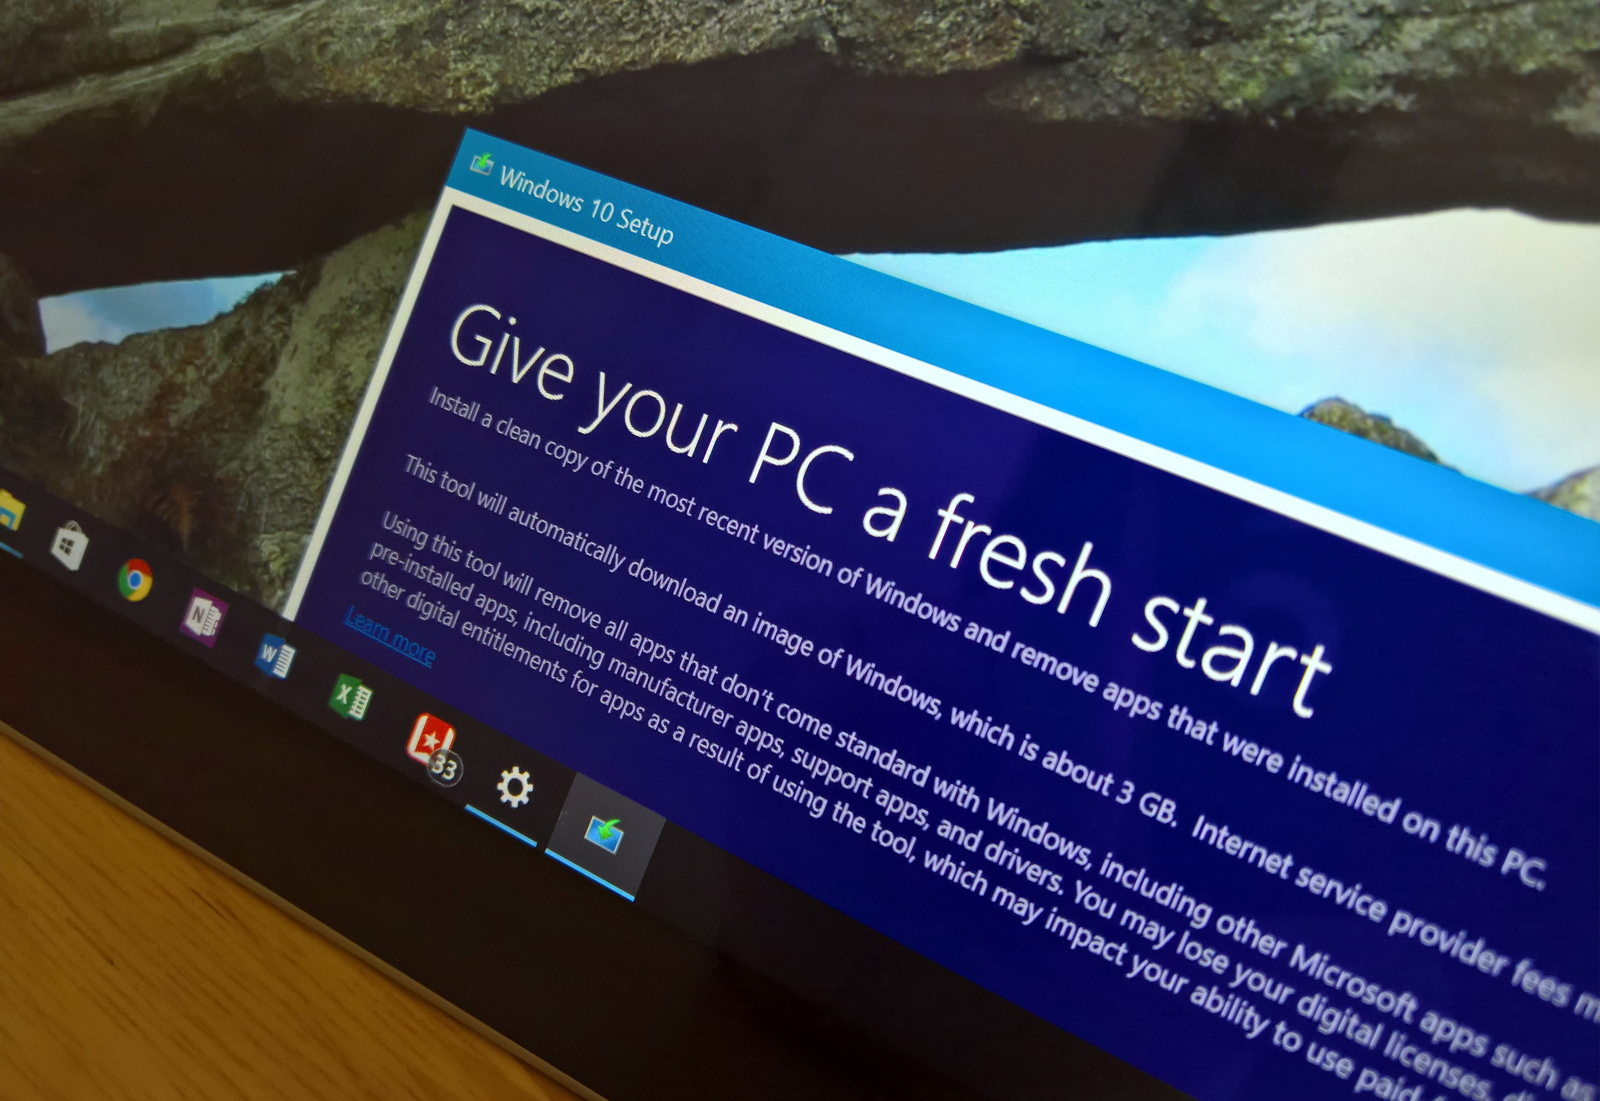 Refresh Windows tool to do clean installation